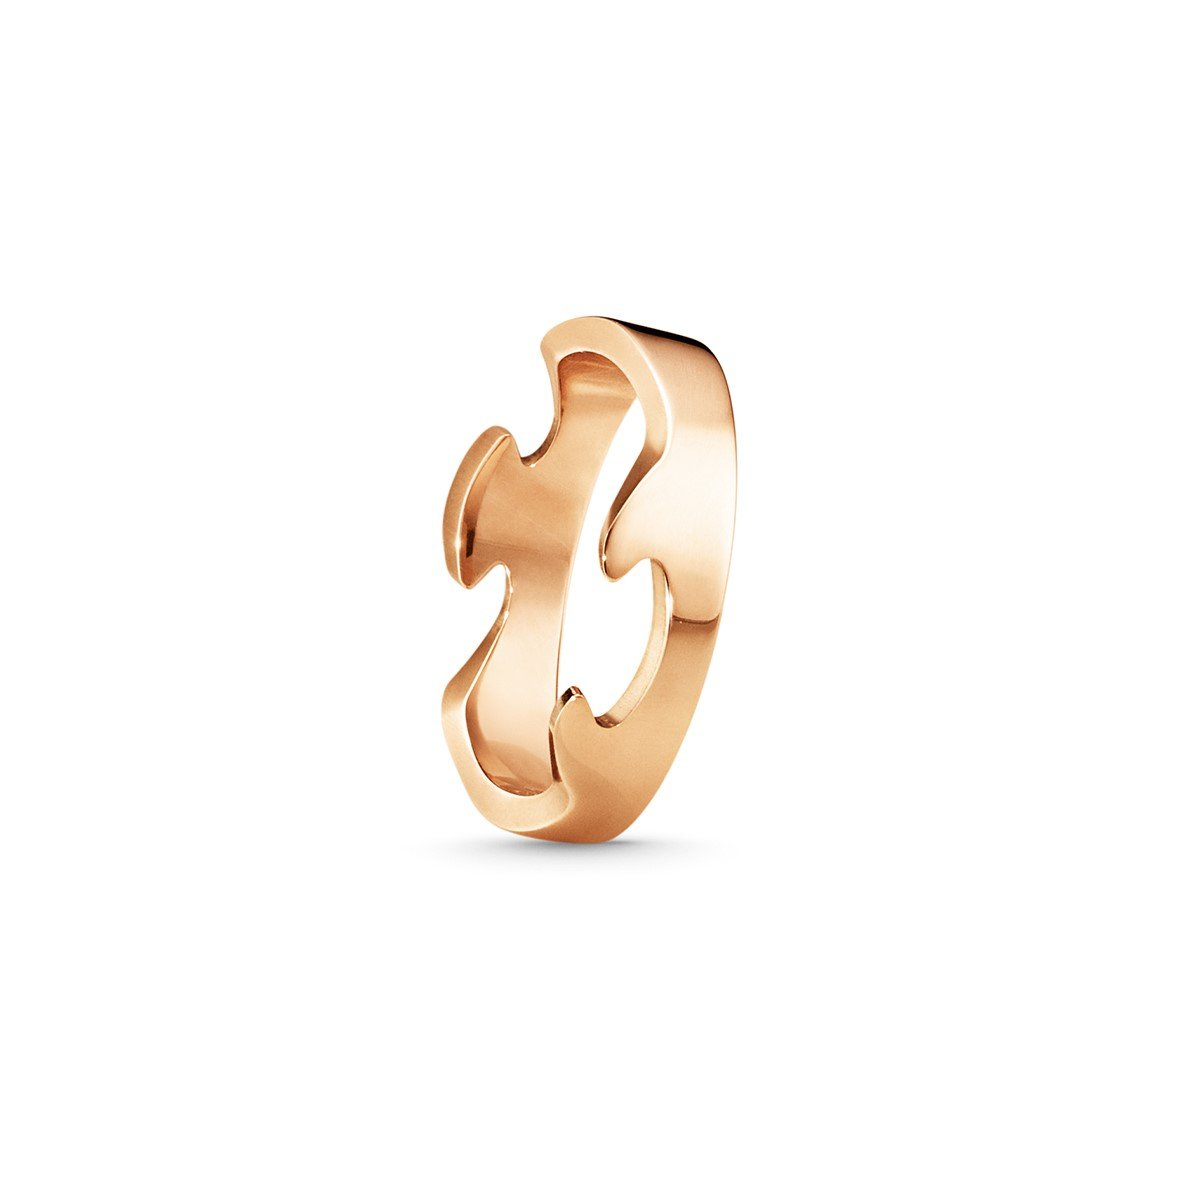 Georg Jensen Fusion Ring End Piece in 18ct Rose Gold - Hamilton & Inches